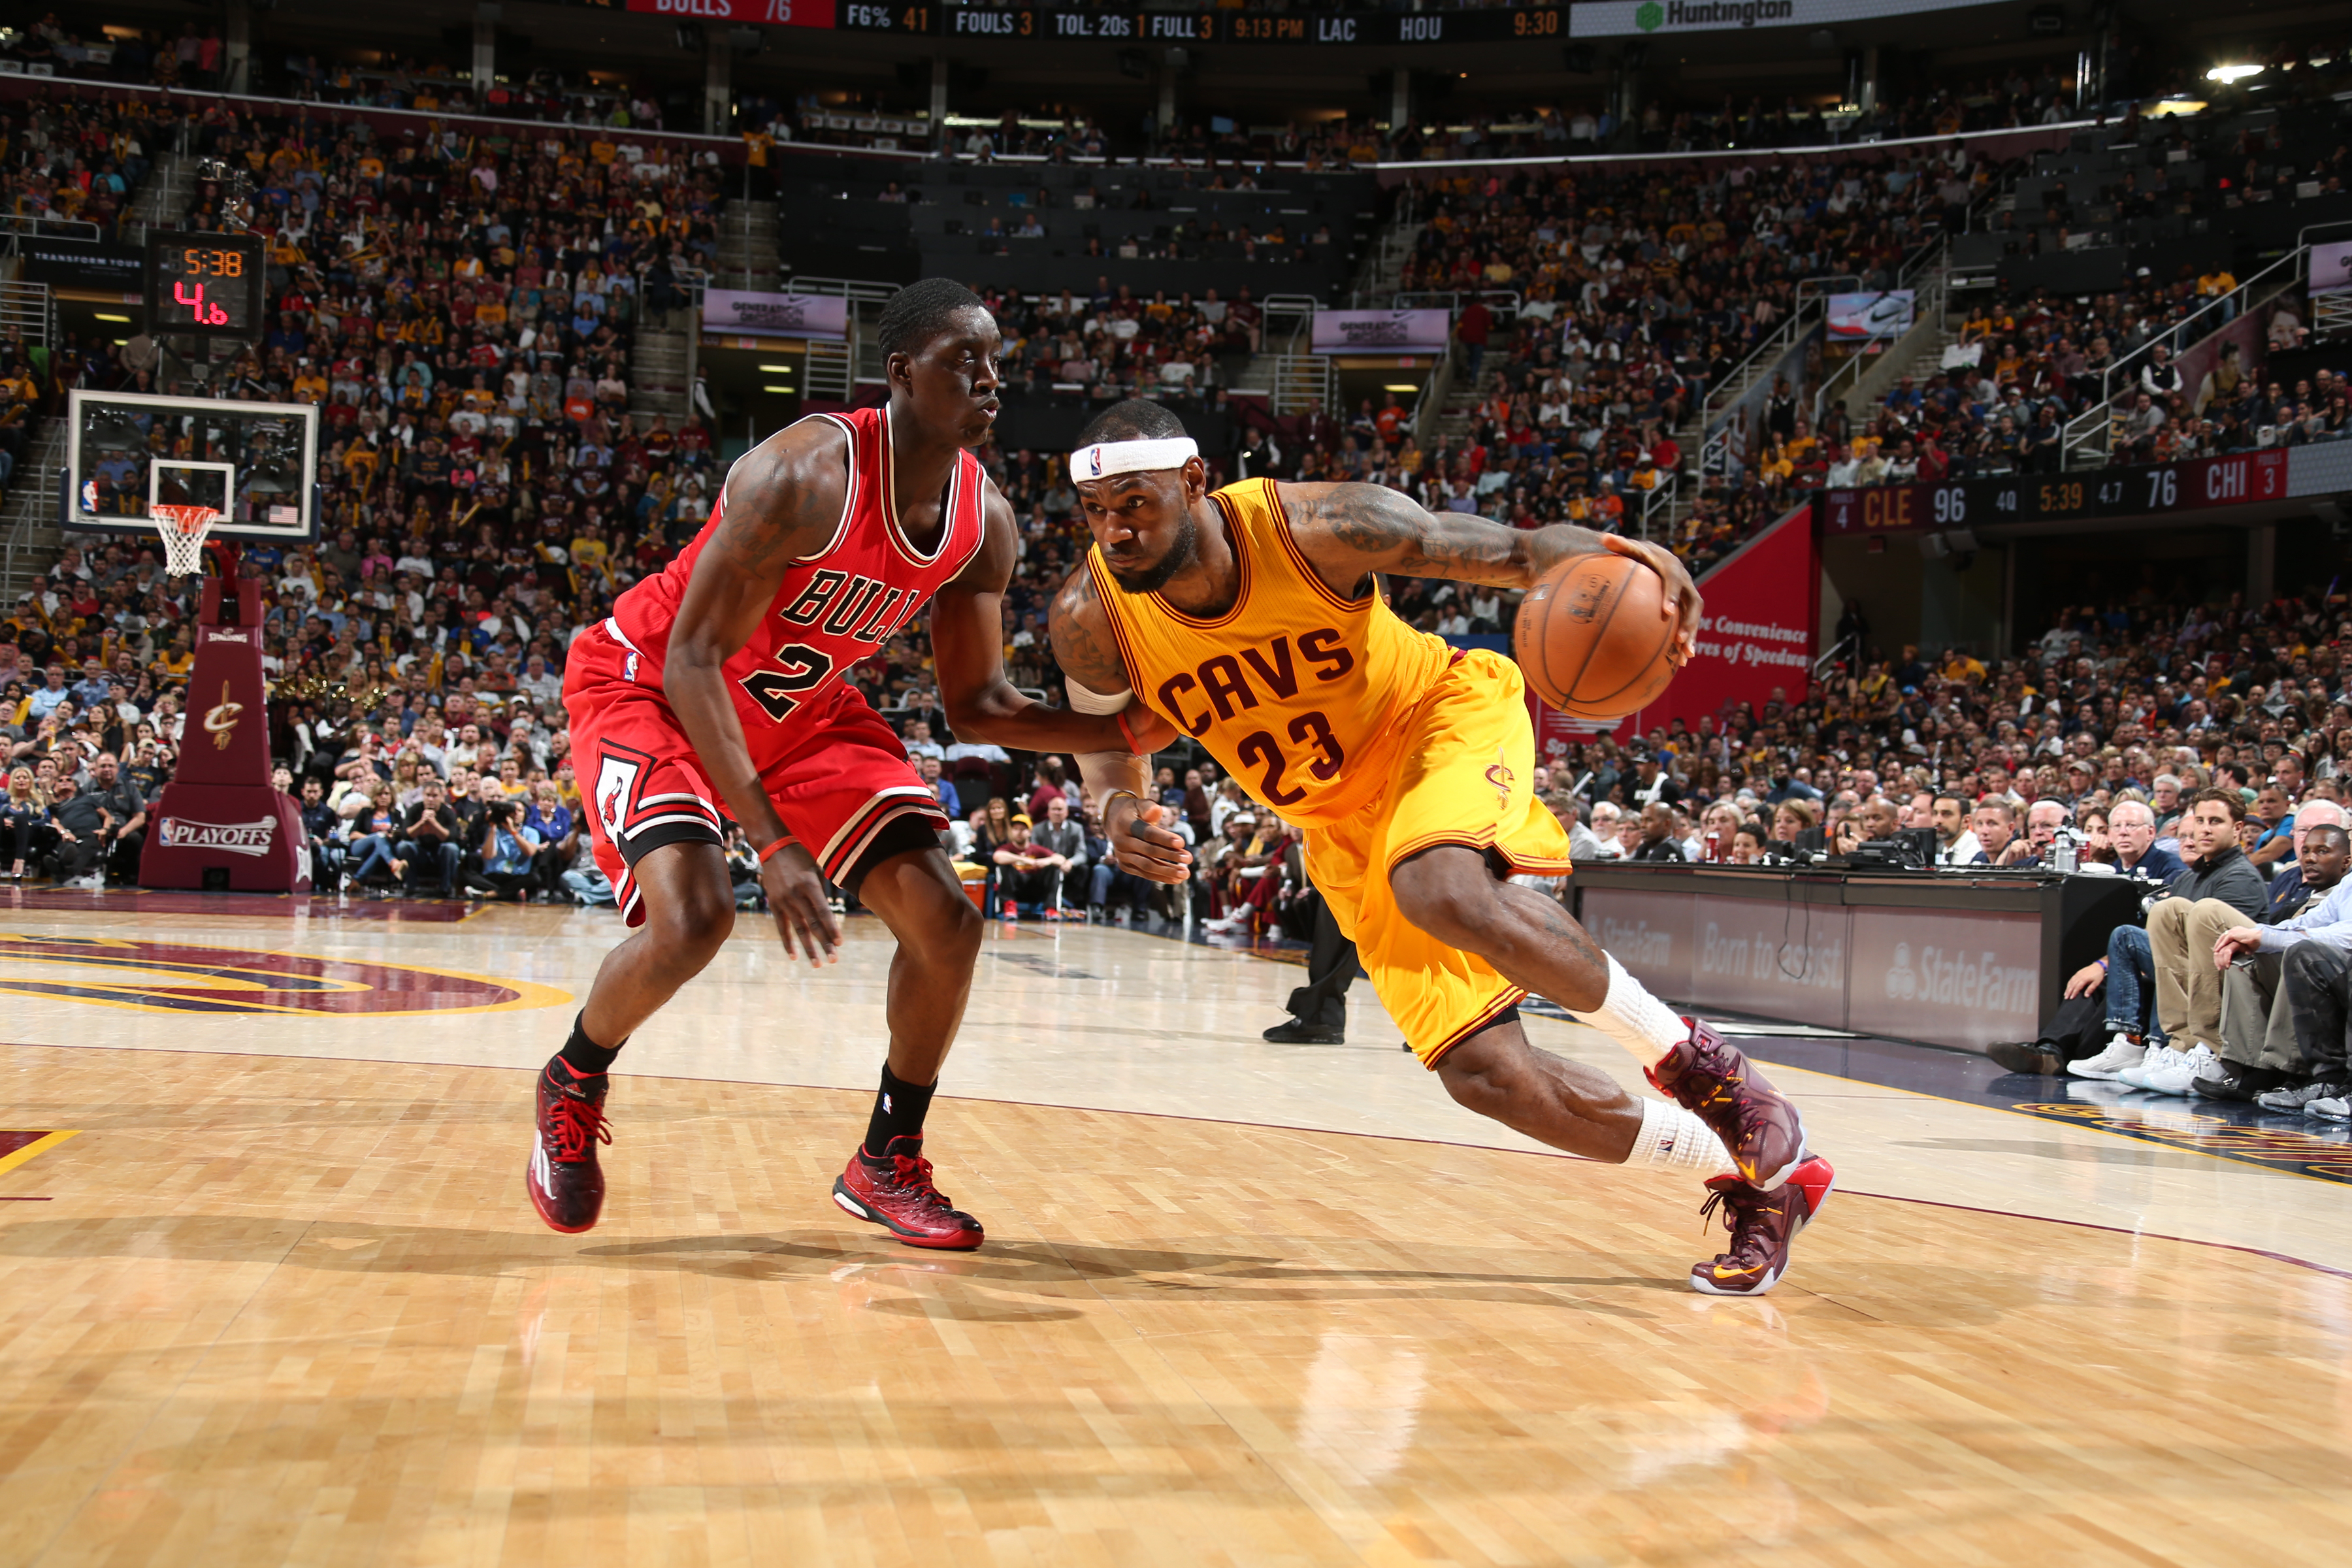 CLEVELAND, OH - MAY 6: LeBron James #23 of the Cleveland Cavaliers drives against Tony Snell #20 of the Chicago Bulls in Game Two of the Eastern Conference Semifinals during the 2015 NBA Playoffs on May 6, 2015 at Quicken Loans Arena in Cleveland, Ohio.